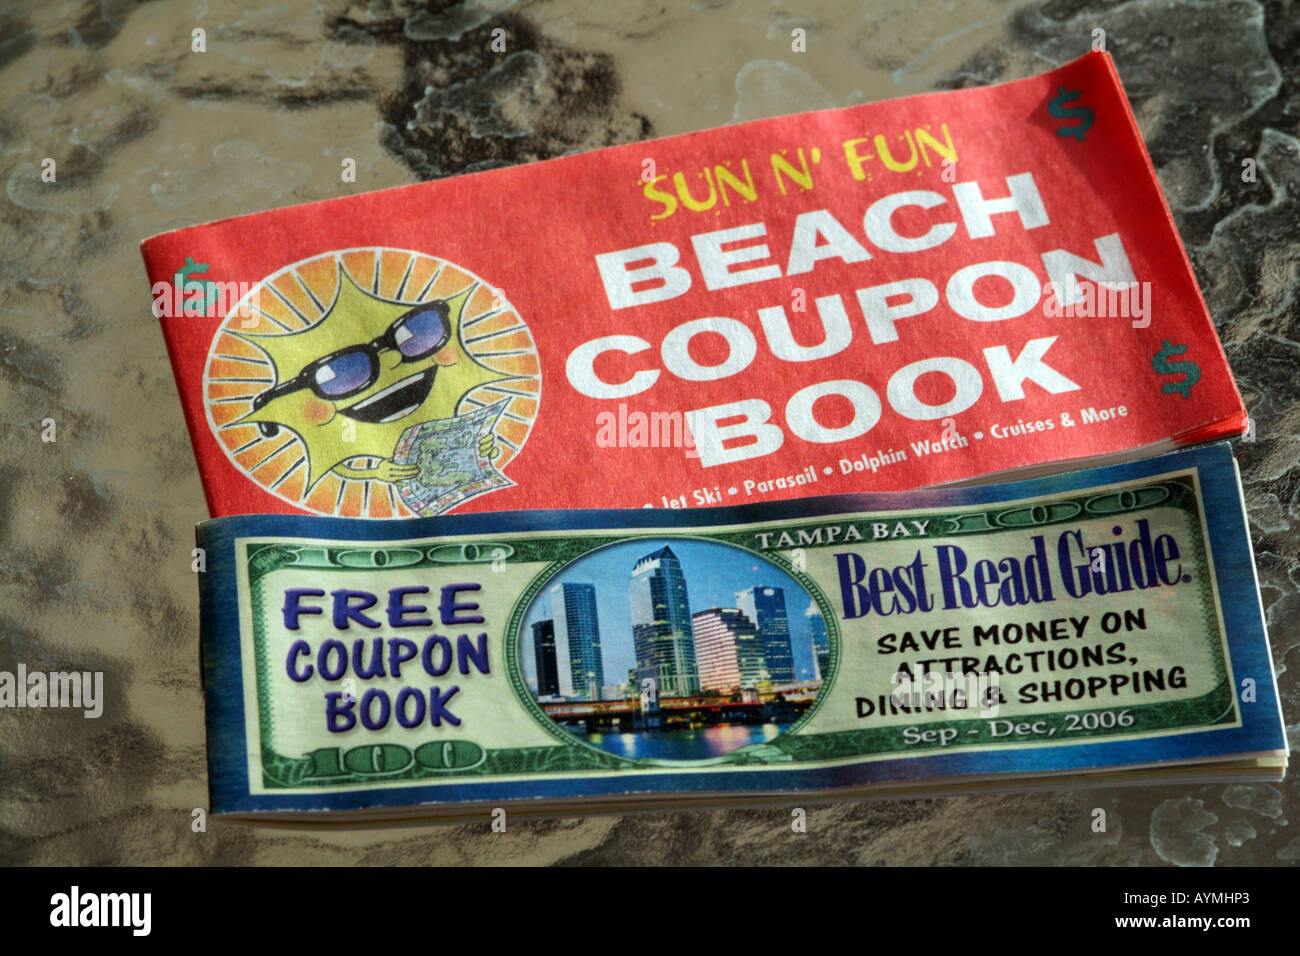 Coupon Books Discount Vouchers For Money Off Deals When Shopping Or Using  Leisure Activities USA  Free Discount Vouchers